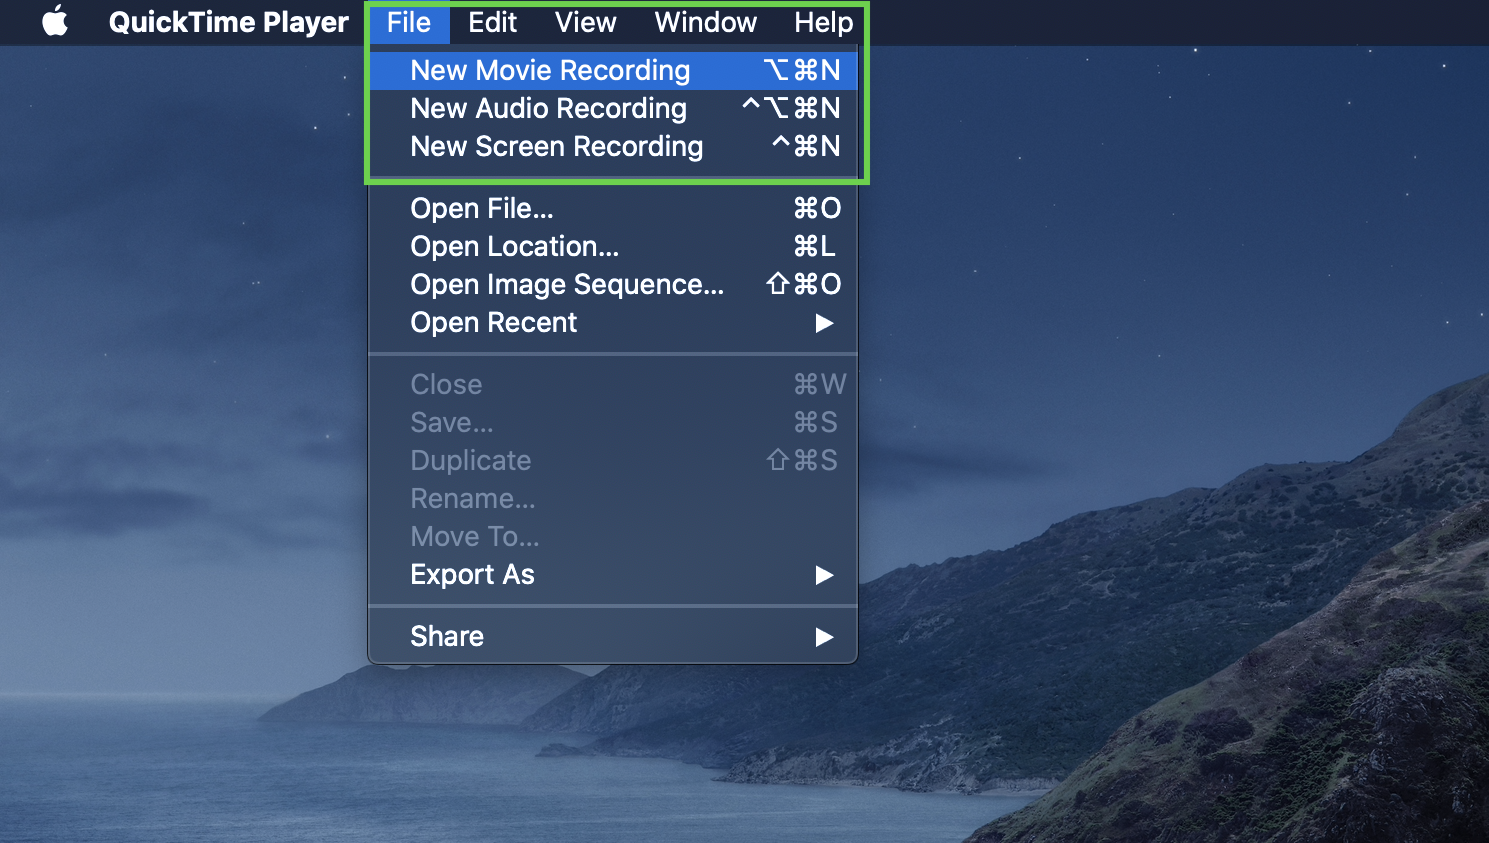 Creating a new movie recording in Quicktime